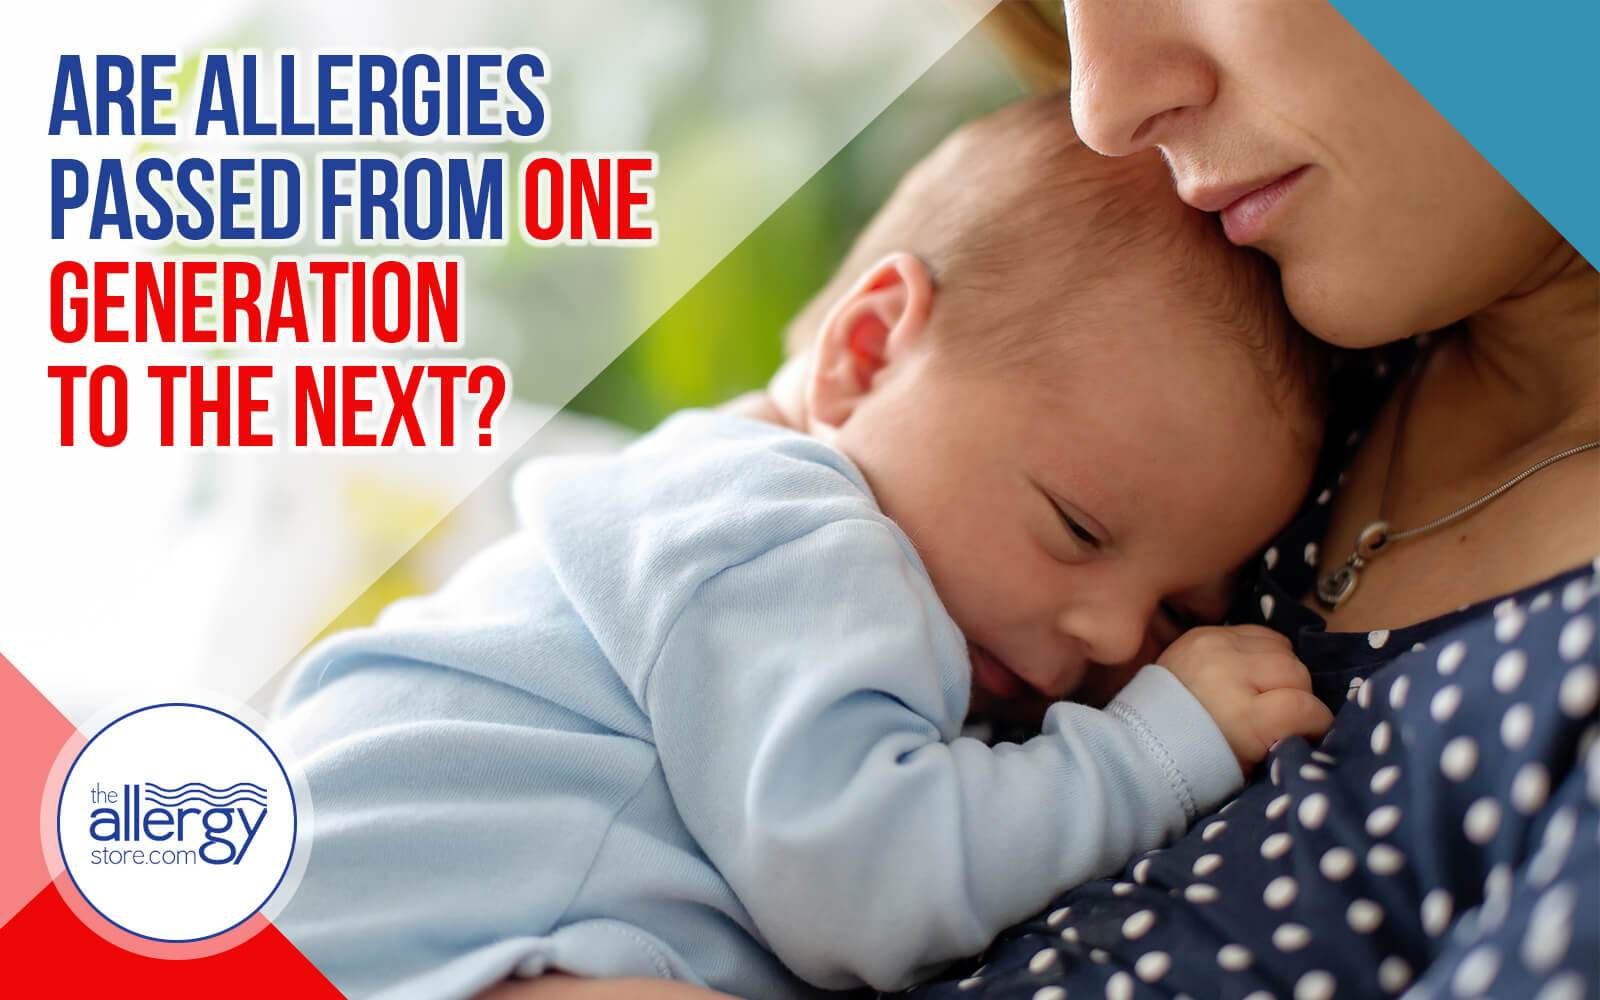 Are Allergies Passed From One Generation to the Next?